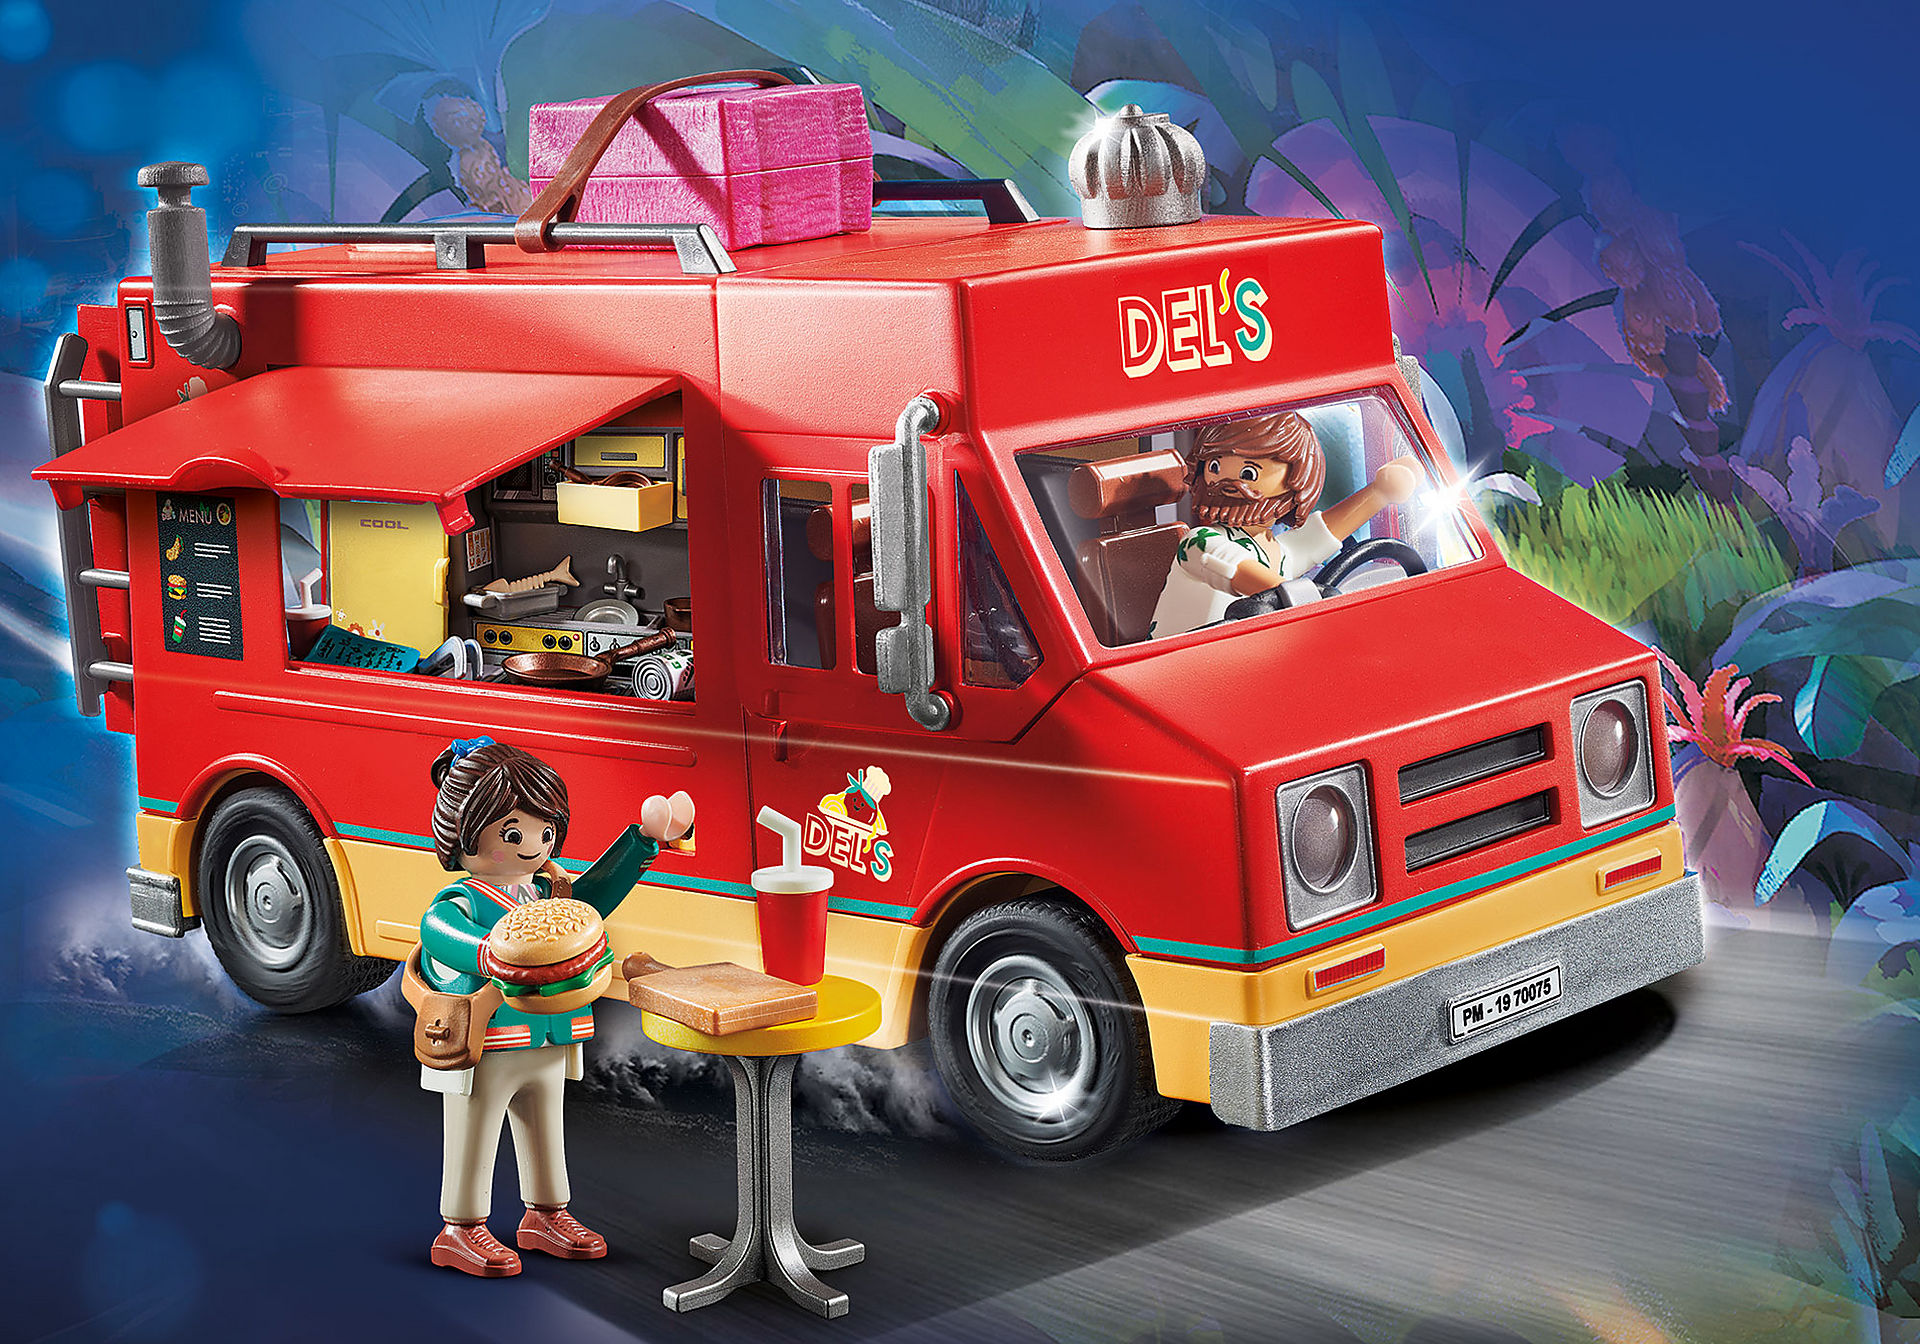 70075 PLAYMOBIL: THE MOVIE Del's Food Truck zoom image1